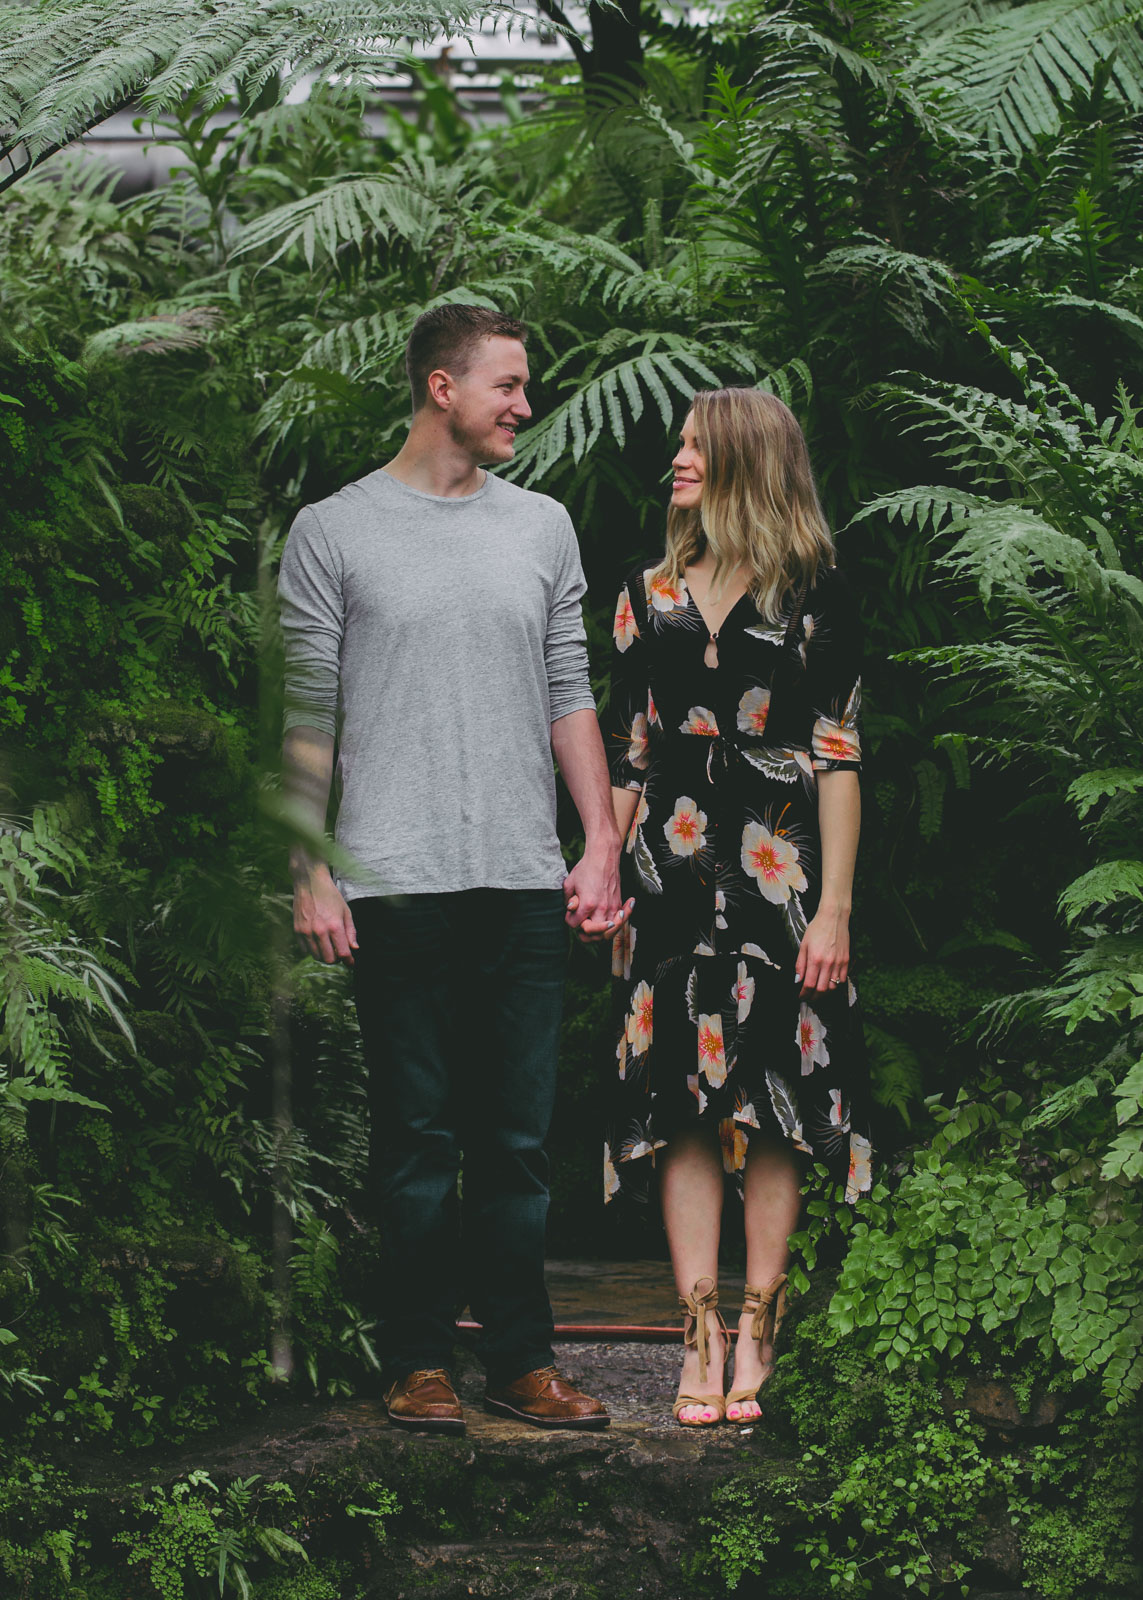 Ambitious Kitchen's Engagement Photos at Garfield Park Conservatory